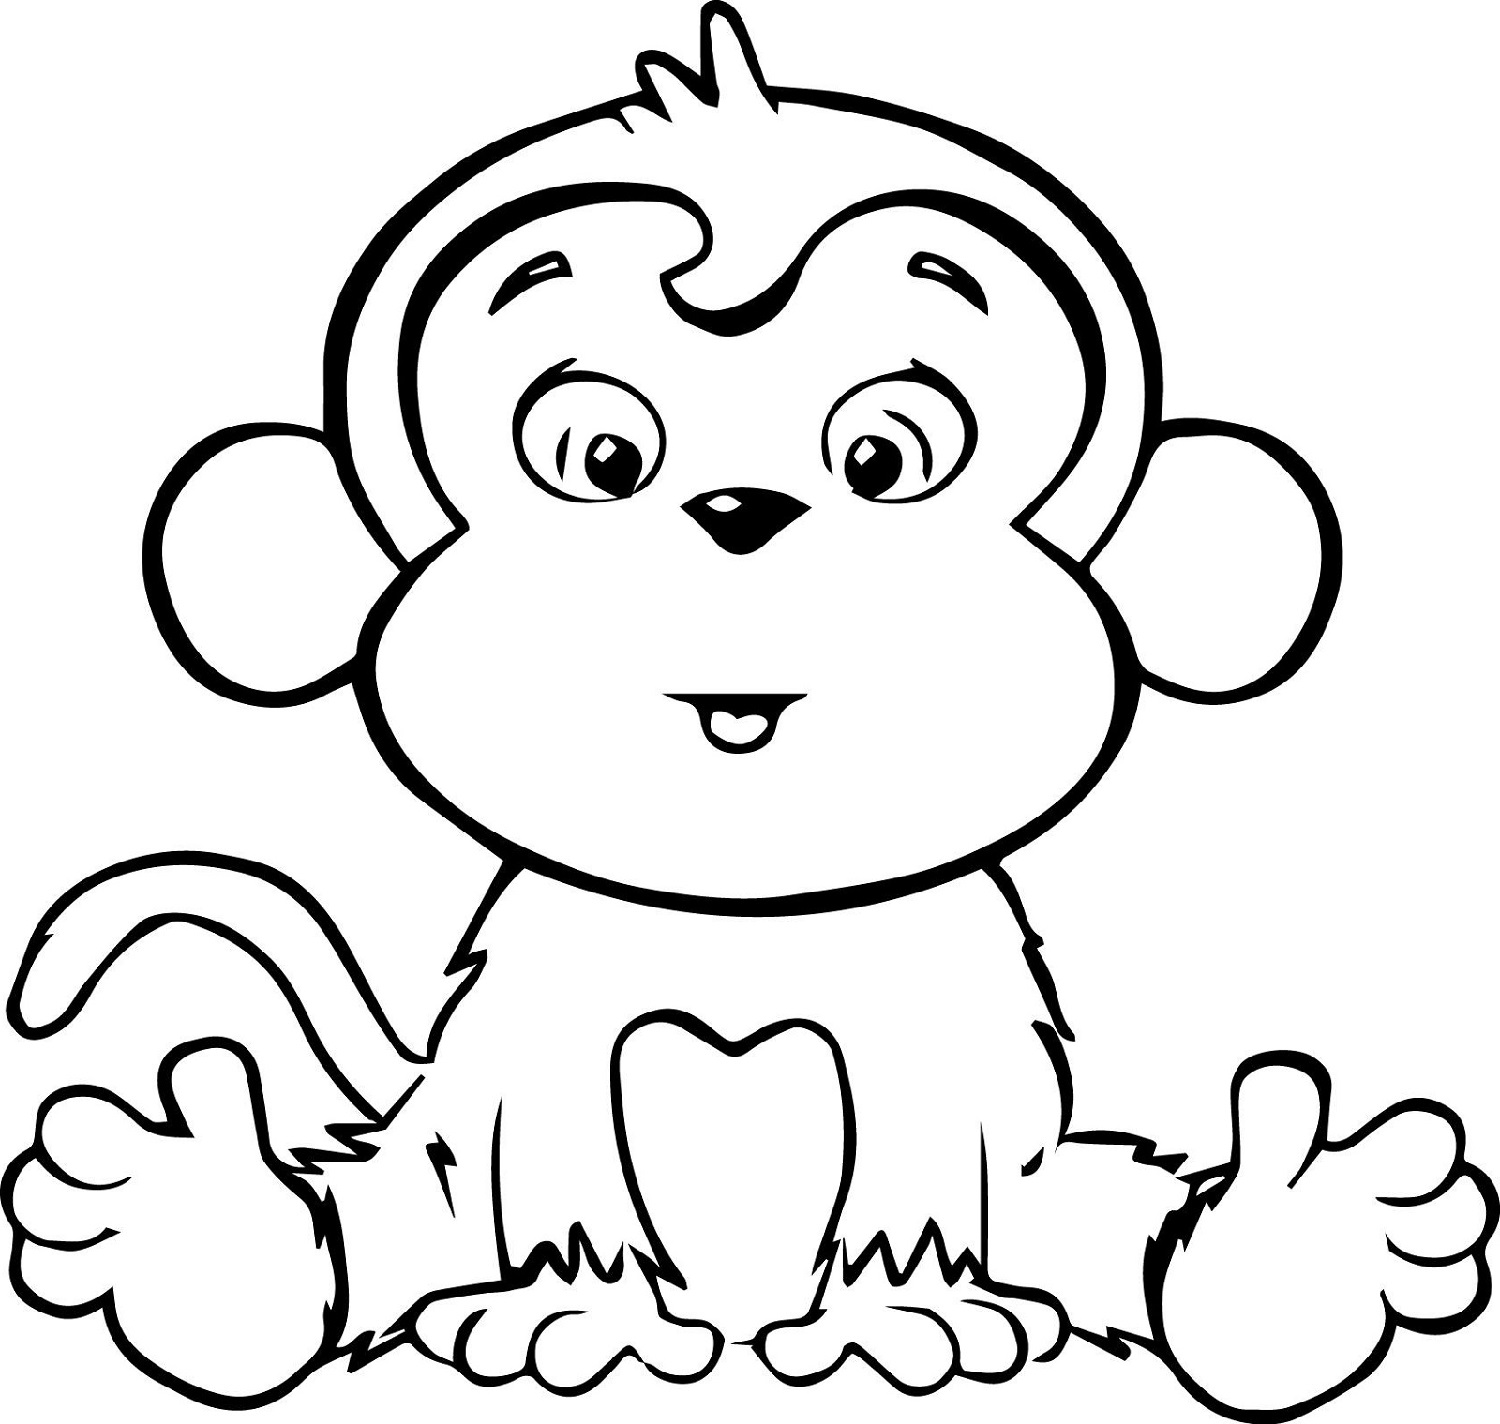 coloring picture of monkey printable monkey clipart coloring pages cartoon crafts picture of monkey coloring